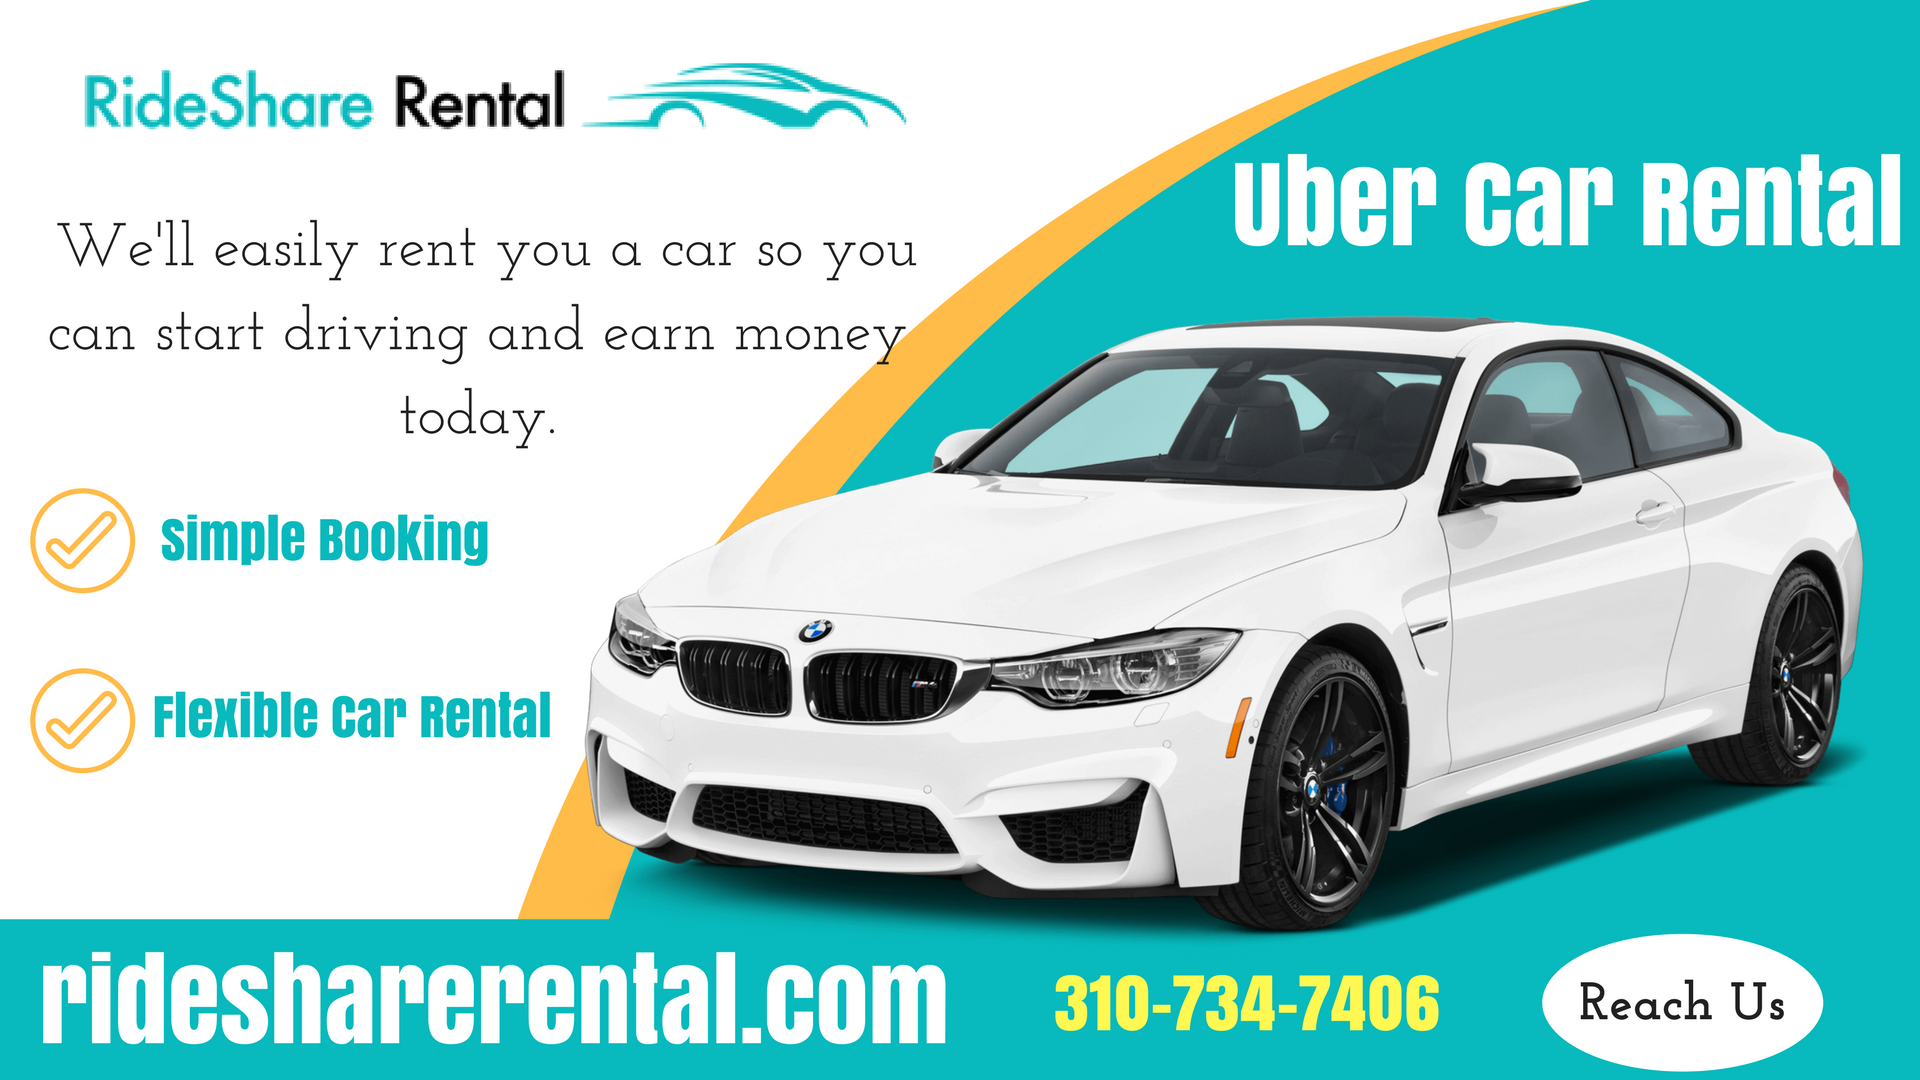 Uber Car Rental Service In California Car Rental Car Rental